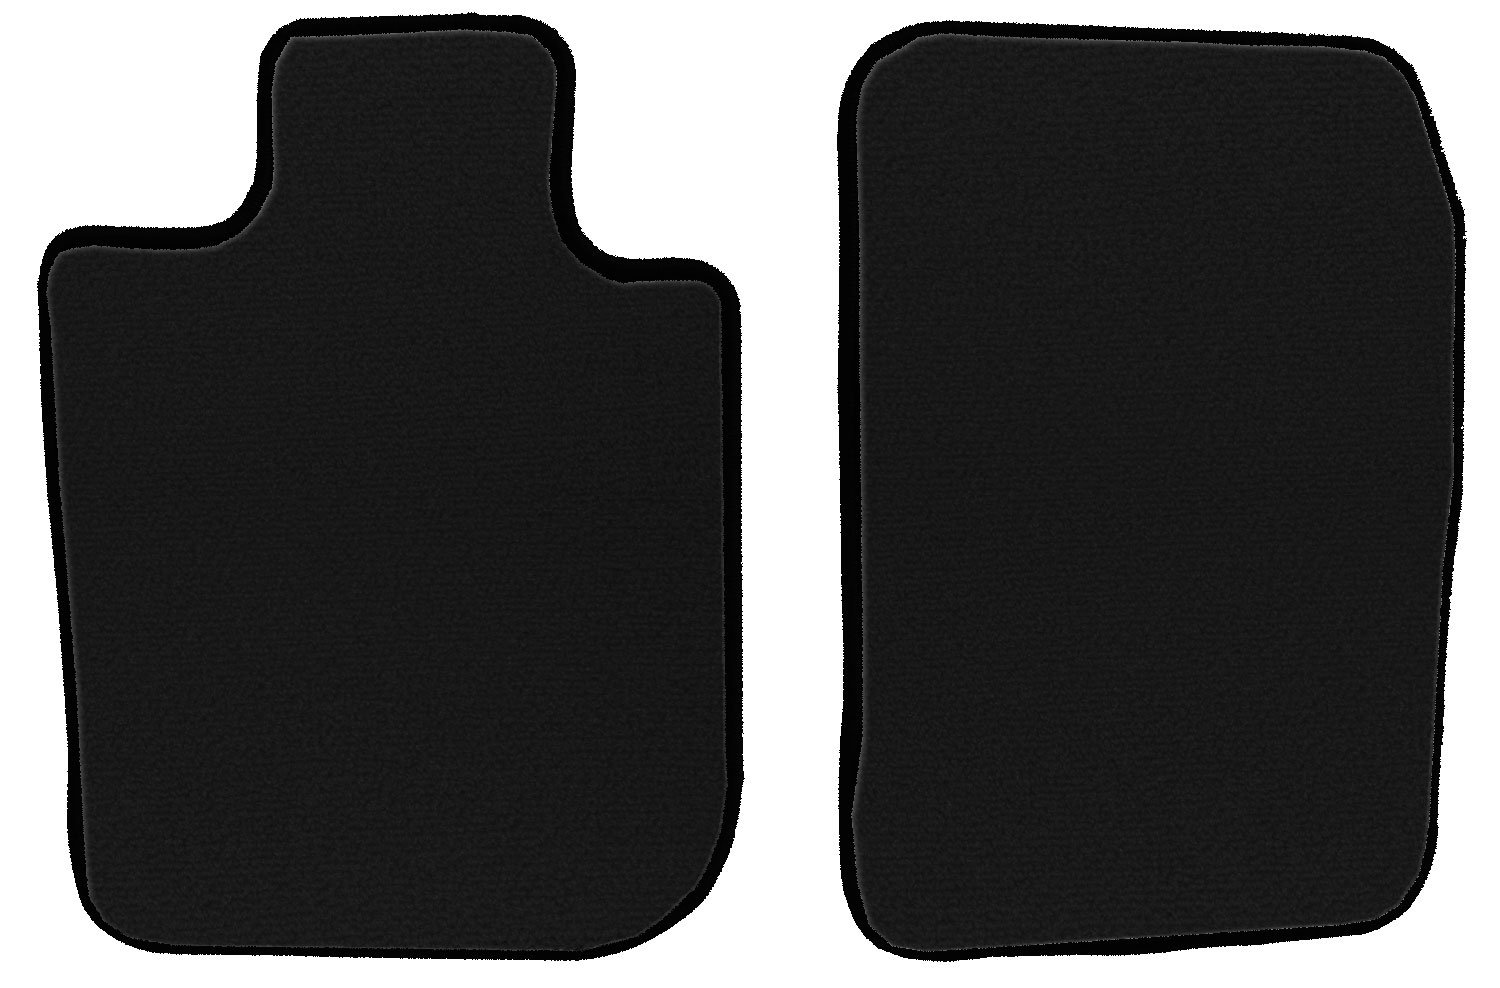 2018 GGBAILEY D60356-F1A-BK-LP Custom Fit Car Mats for 2017 2019 Land Rover Discovery Black Loop Driver /& Passenger Floor